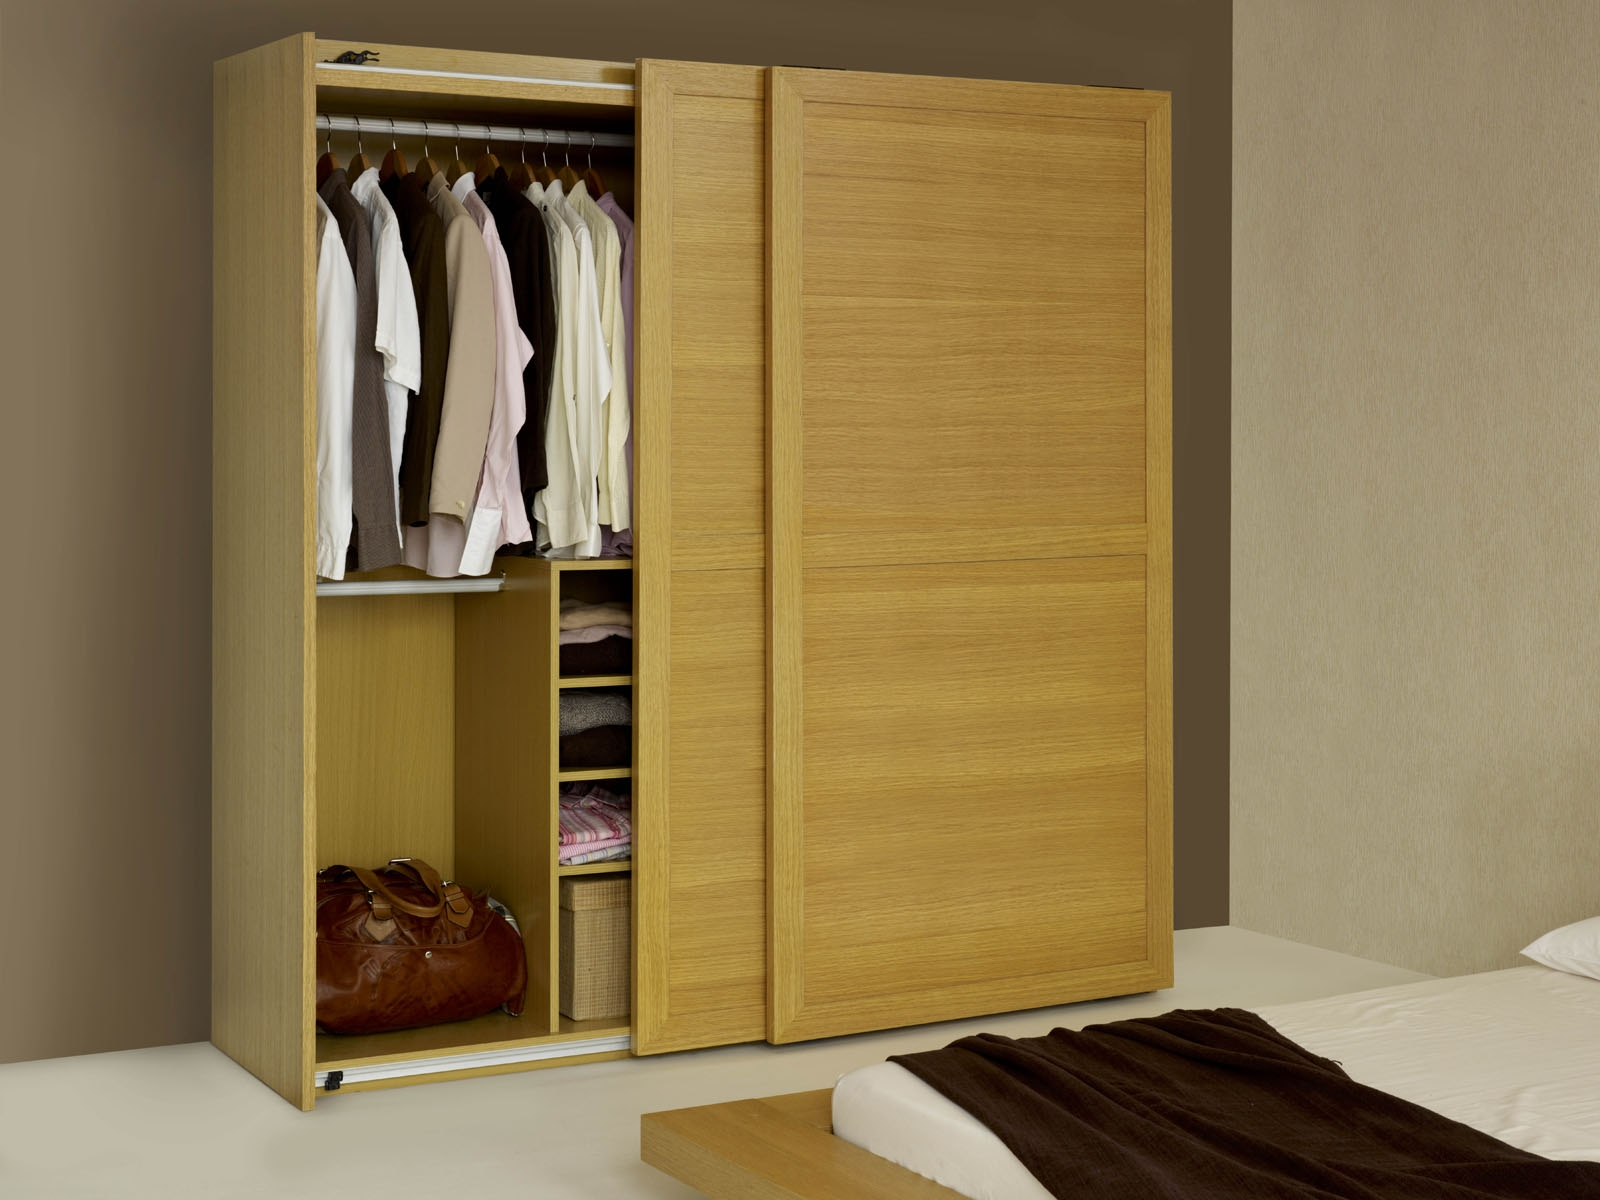 Wooden Sliding Wardrobe Hpd434 Sliding Door Wardrobes Al Habib In Cupboard Sliding Doors (View 17 of 25)